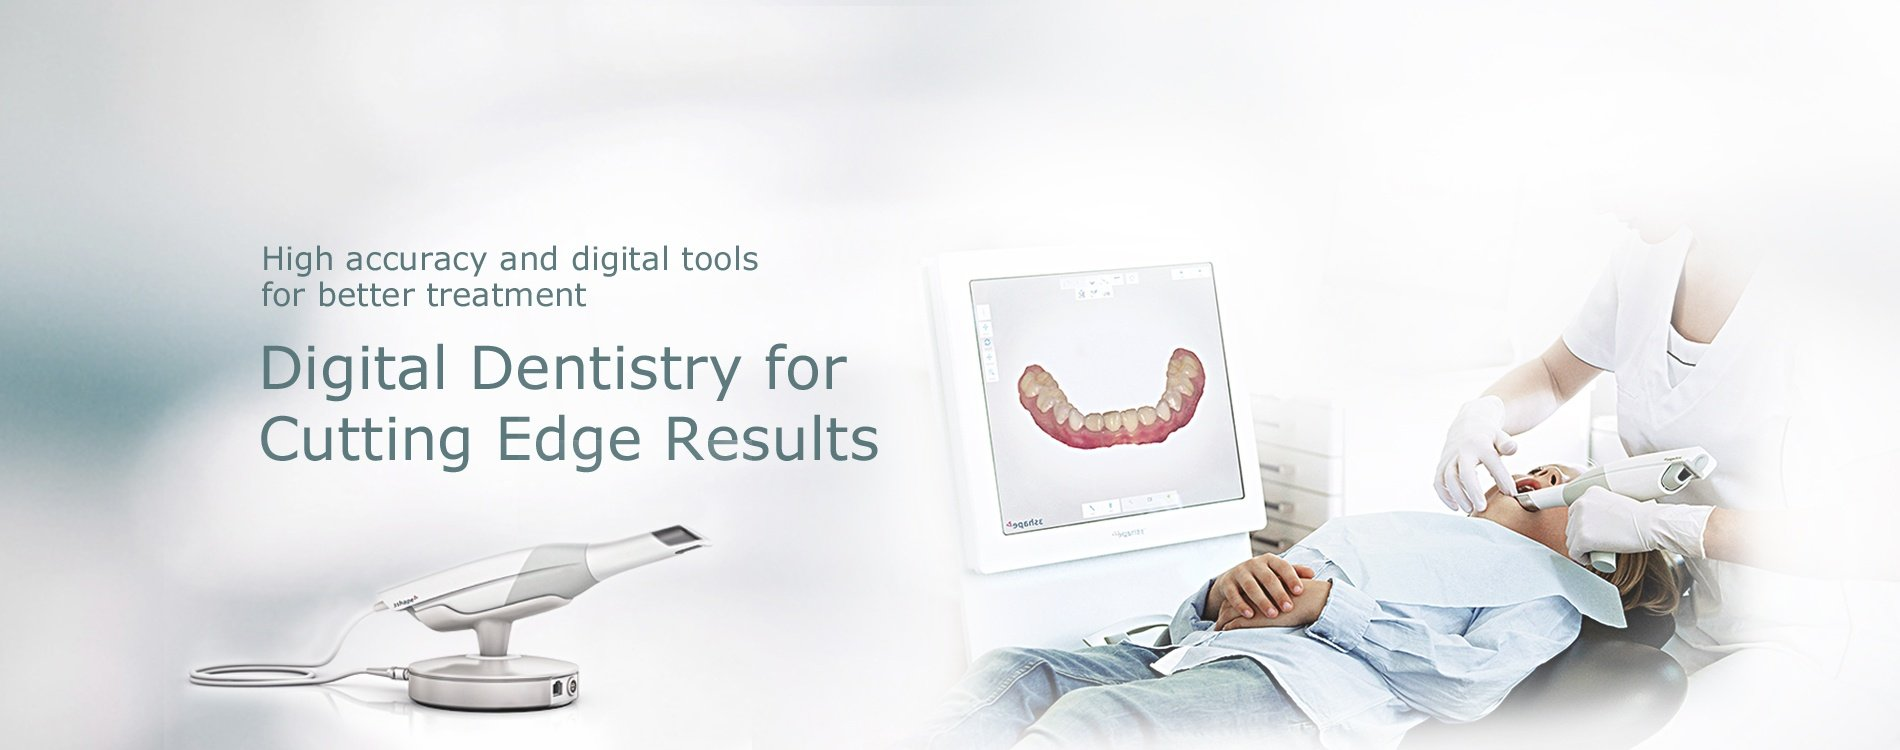 New Slider 5 - Digital Dentistry.jpg